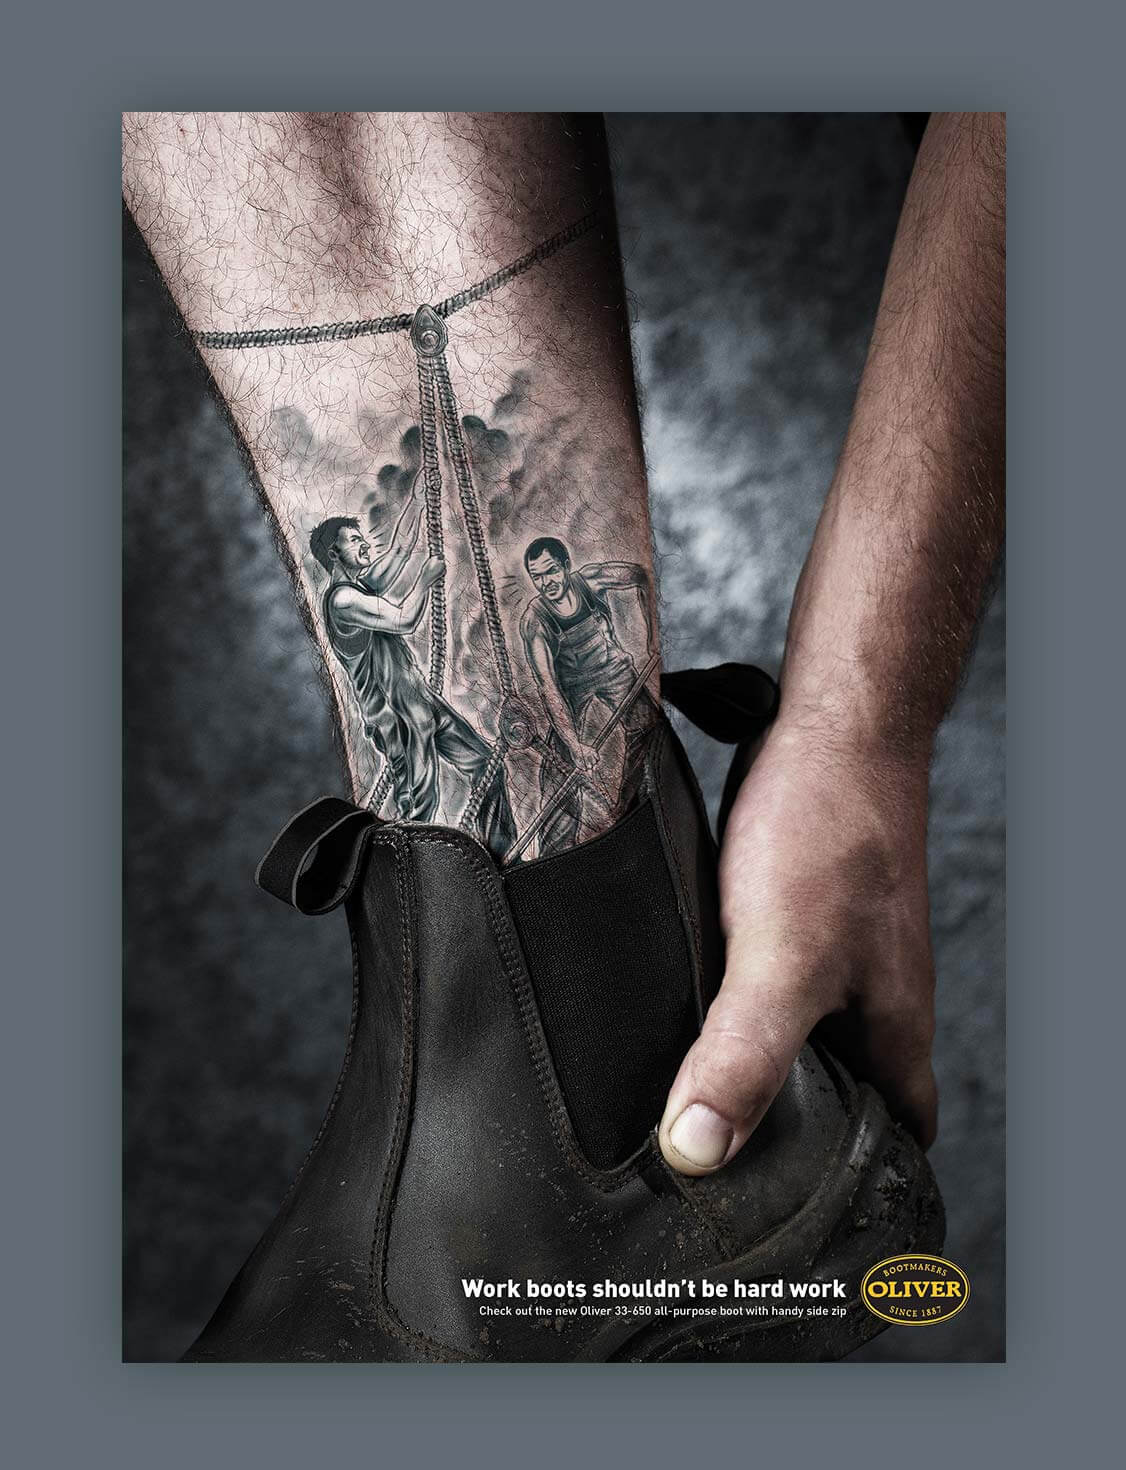 Oliver Footwear | Worker with ankle tattoo of men working hard | Magazine Ad